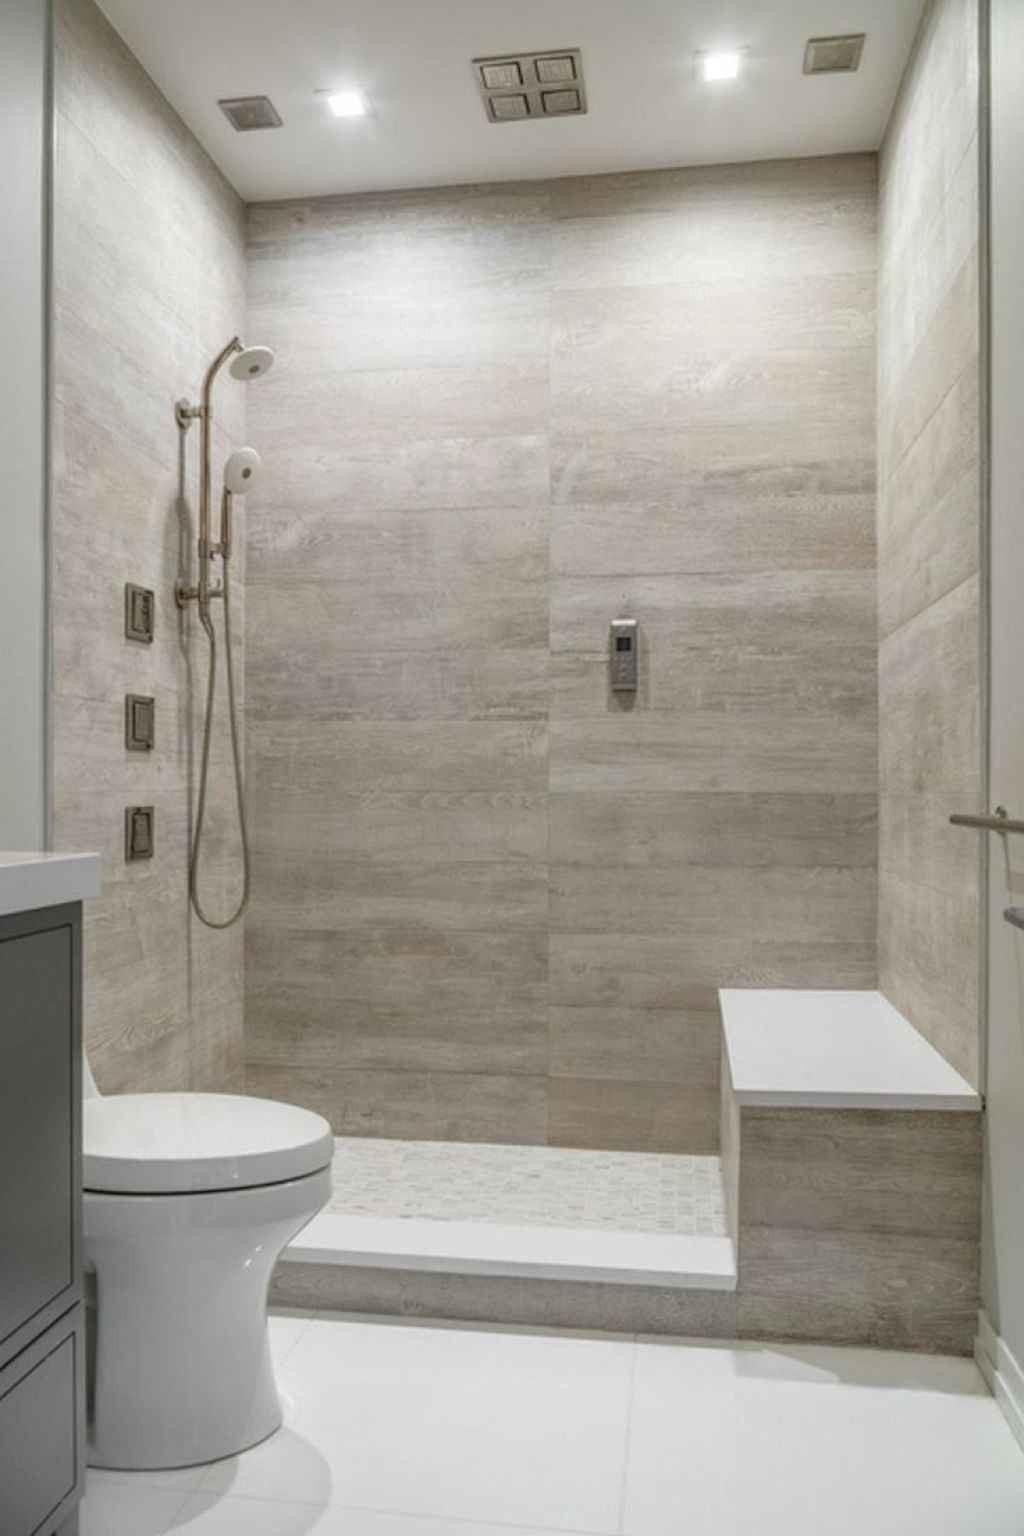 Affordable Small Master Bathroom Remodel Ideas On A Budget 11 Best Bathroom Tiles Small Bathroom Bathroom Tile Designs